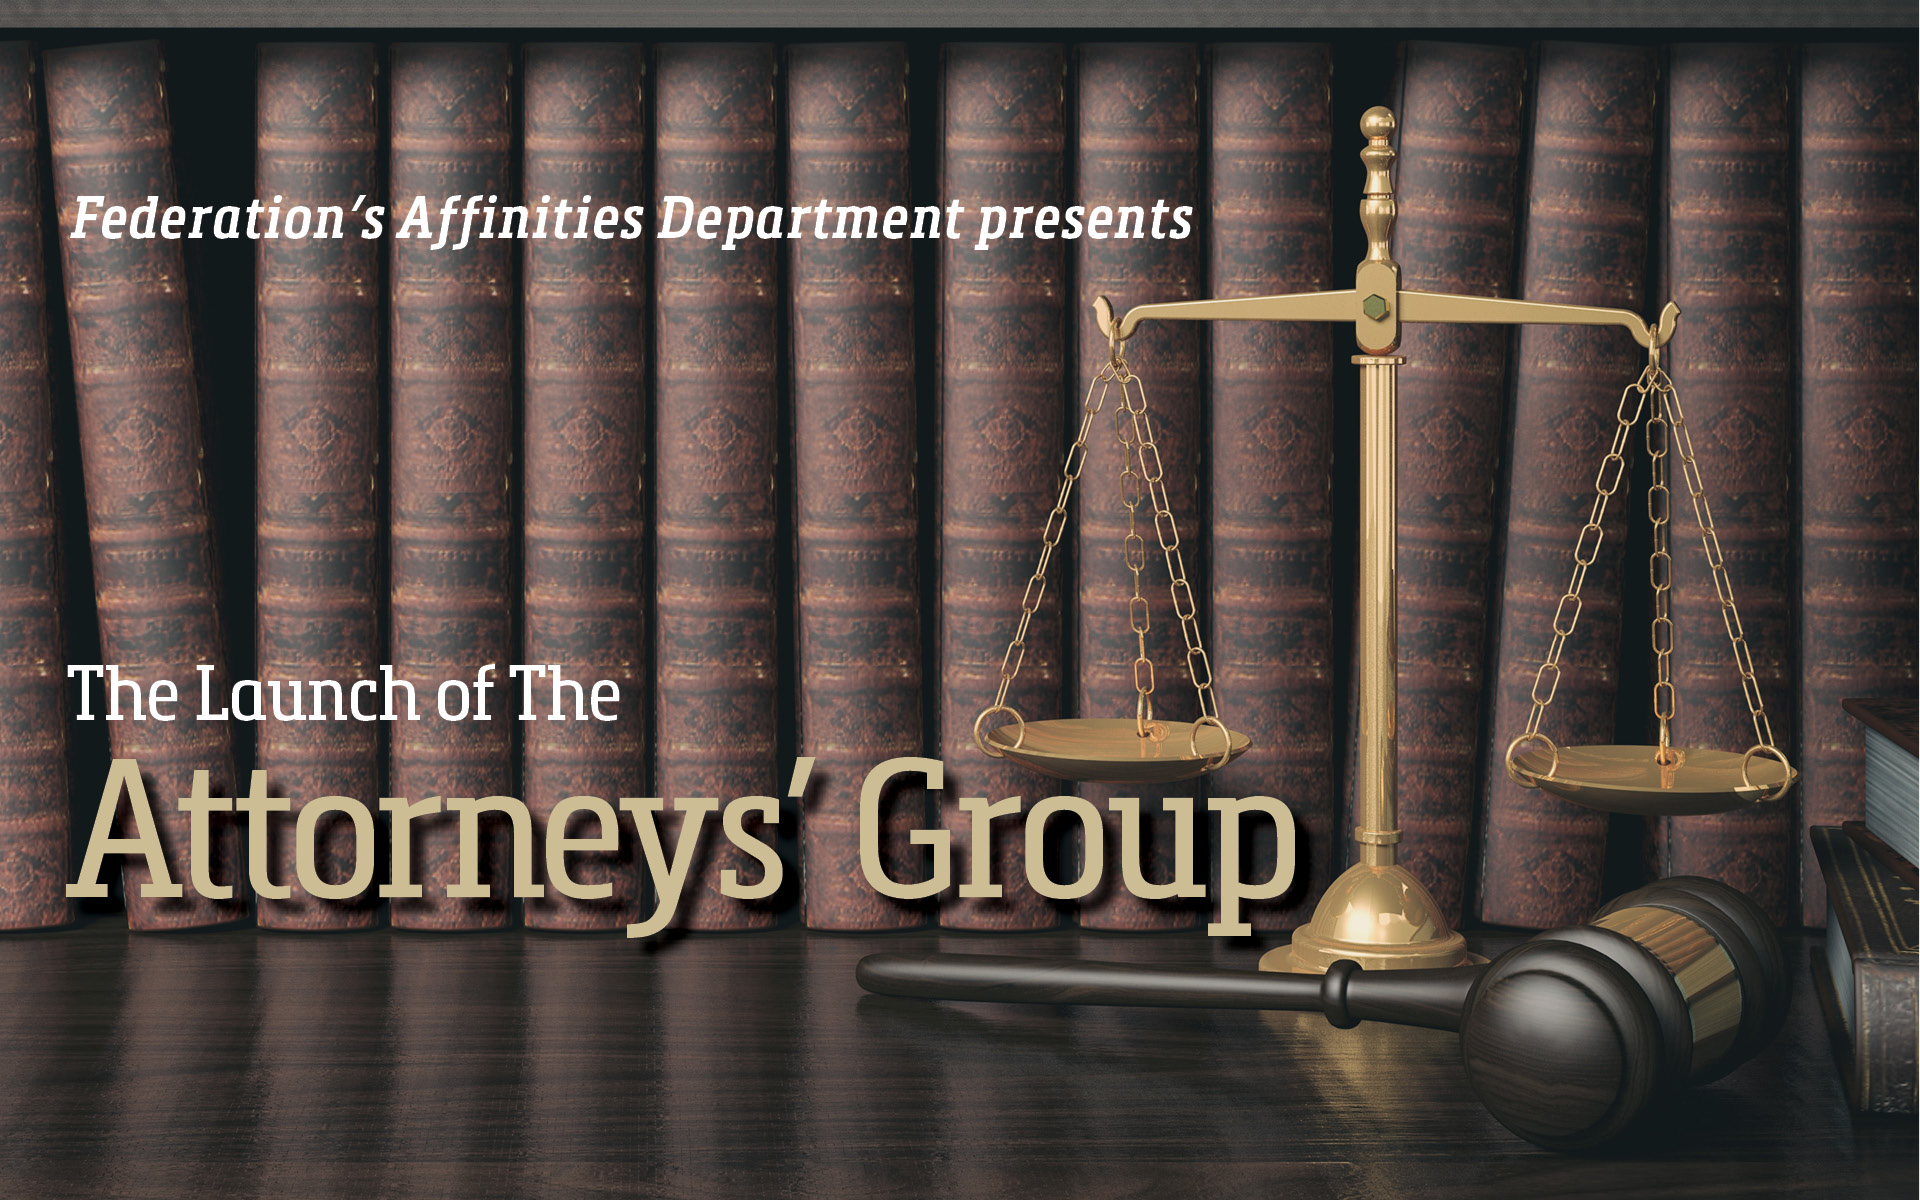 21_aff_attorney's group event_jlife-20210902-162342.jpg